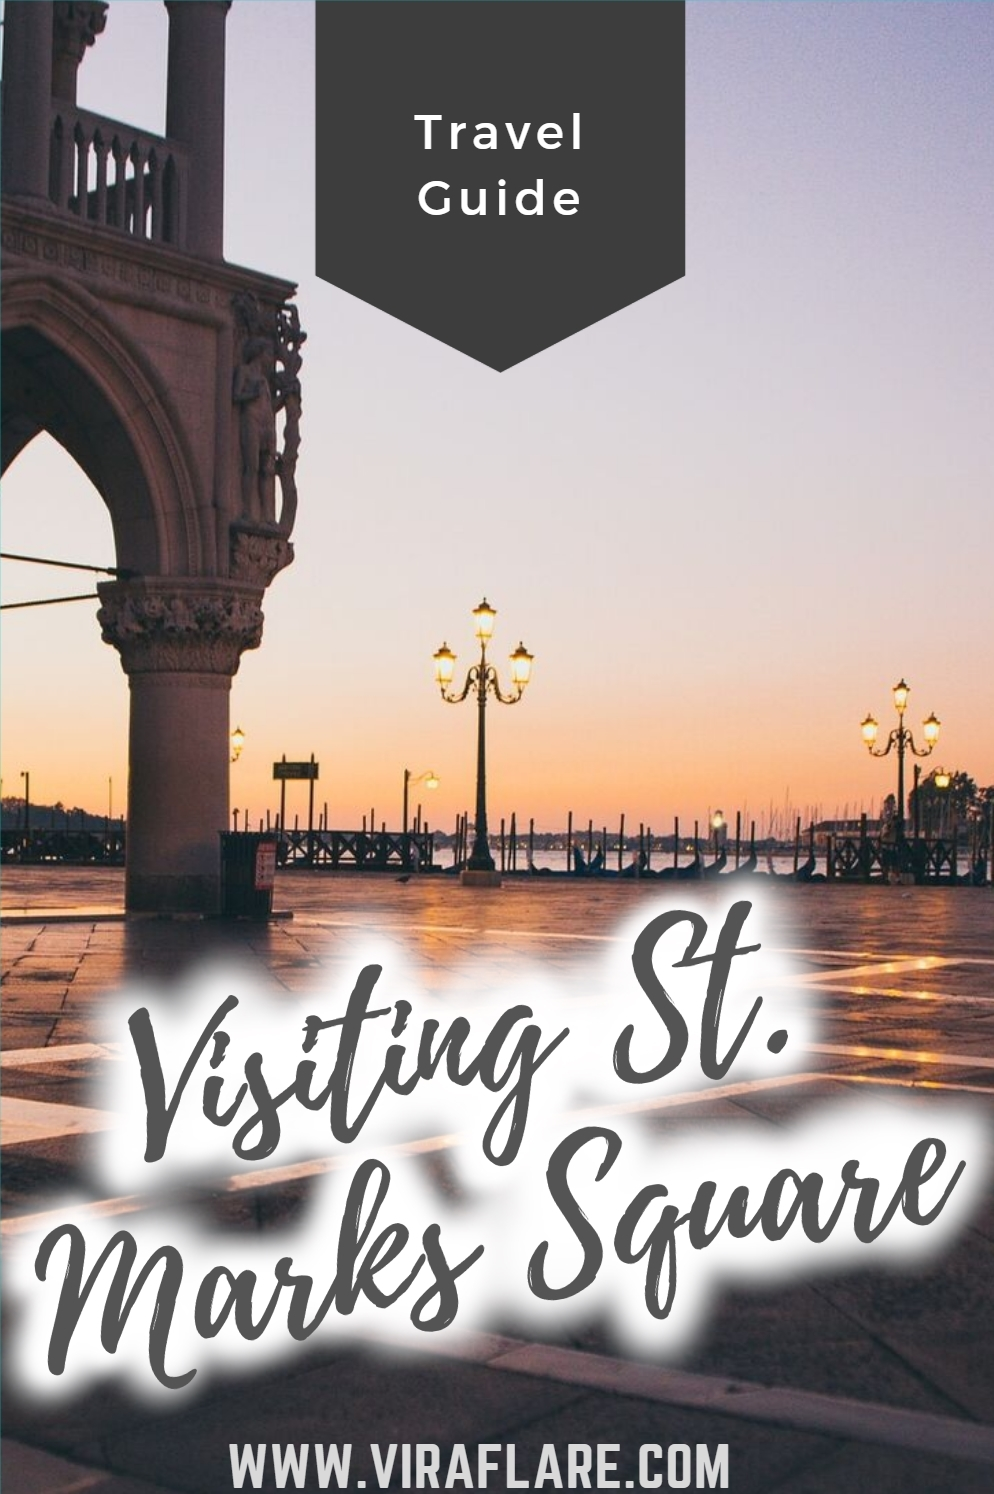 Visiting St. Marks Square